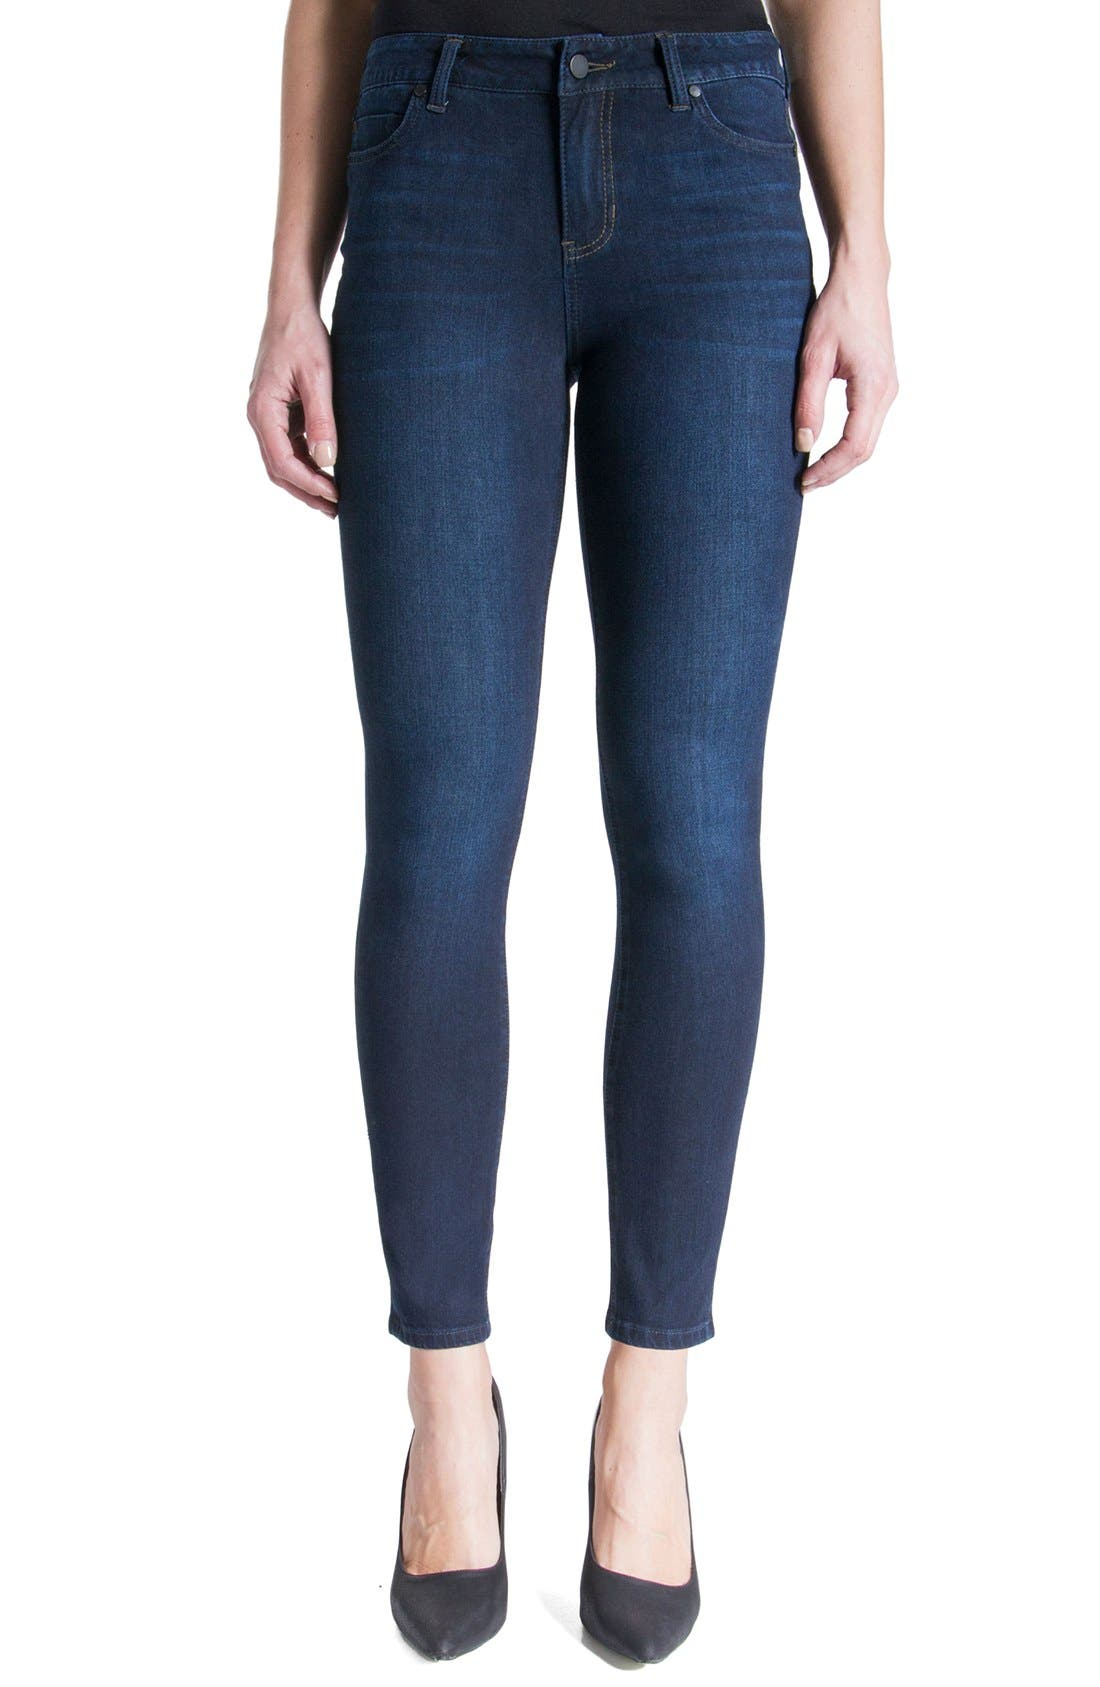 Liverpool Jeans Company Piper Hugger Lift Sculpt Ankle Skinny Jeans  (Blackout Blue)